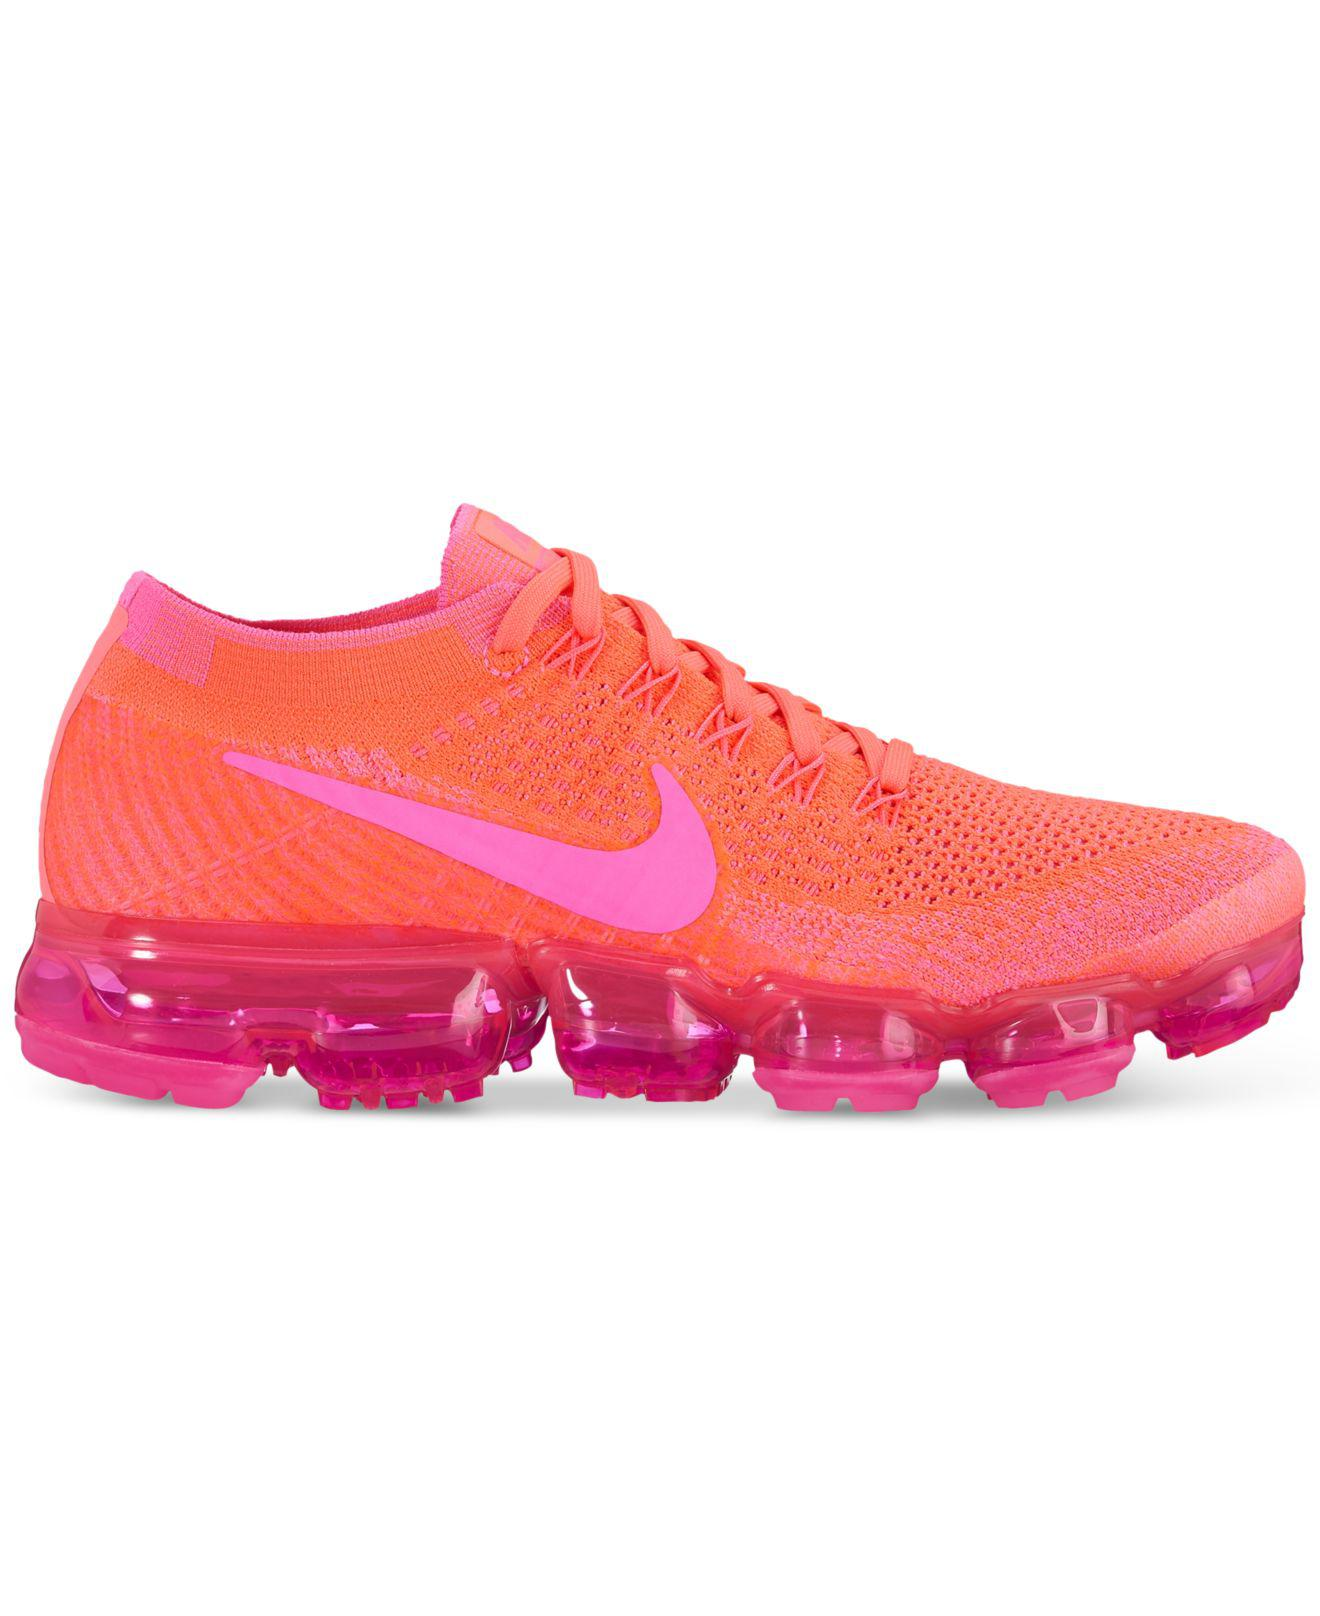 online store e0812 a3a59 Nike Pink Air Vapormax Flyknit Running Sneakers From Finish Line